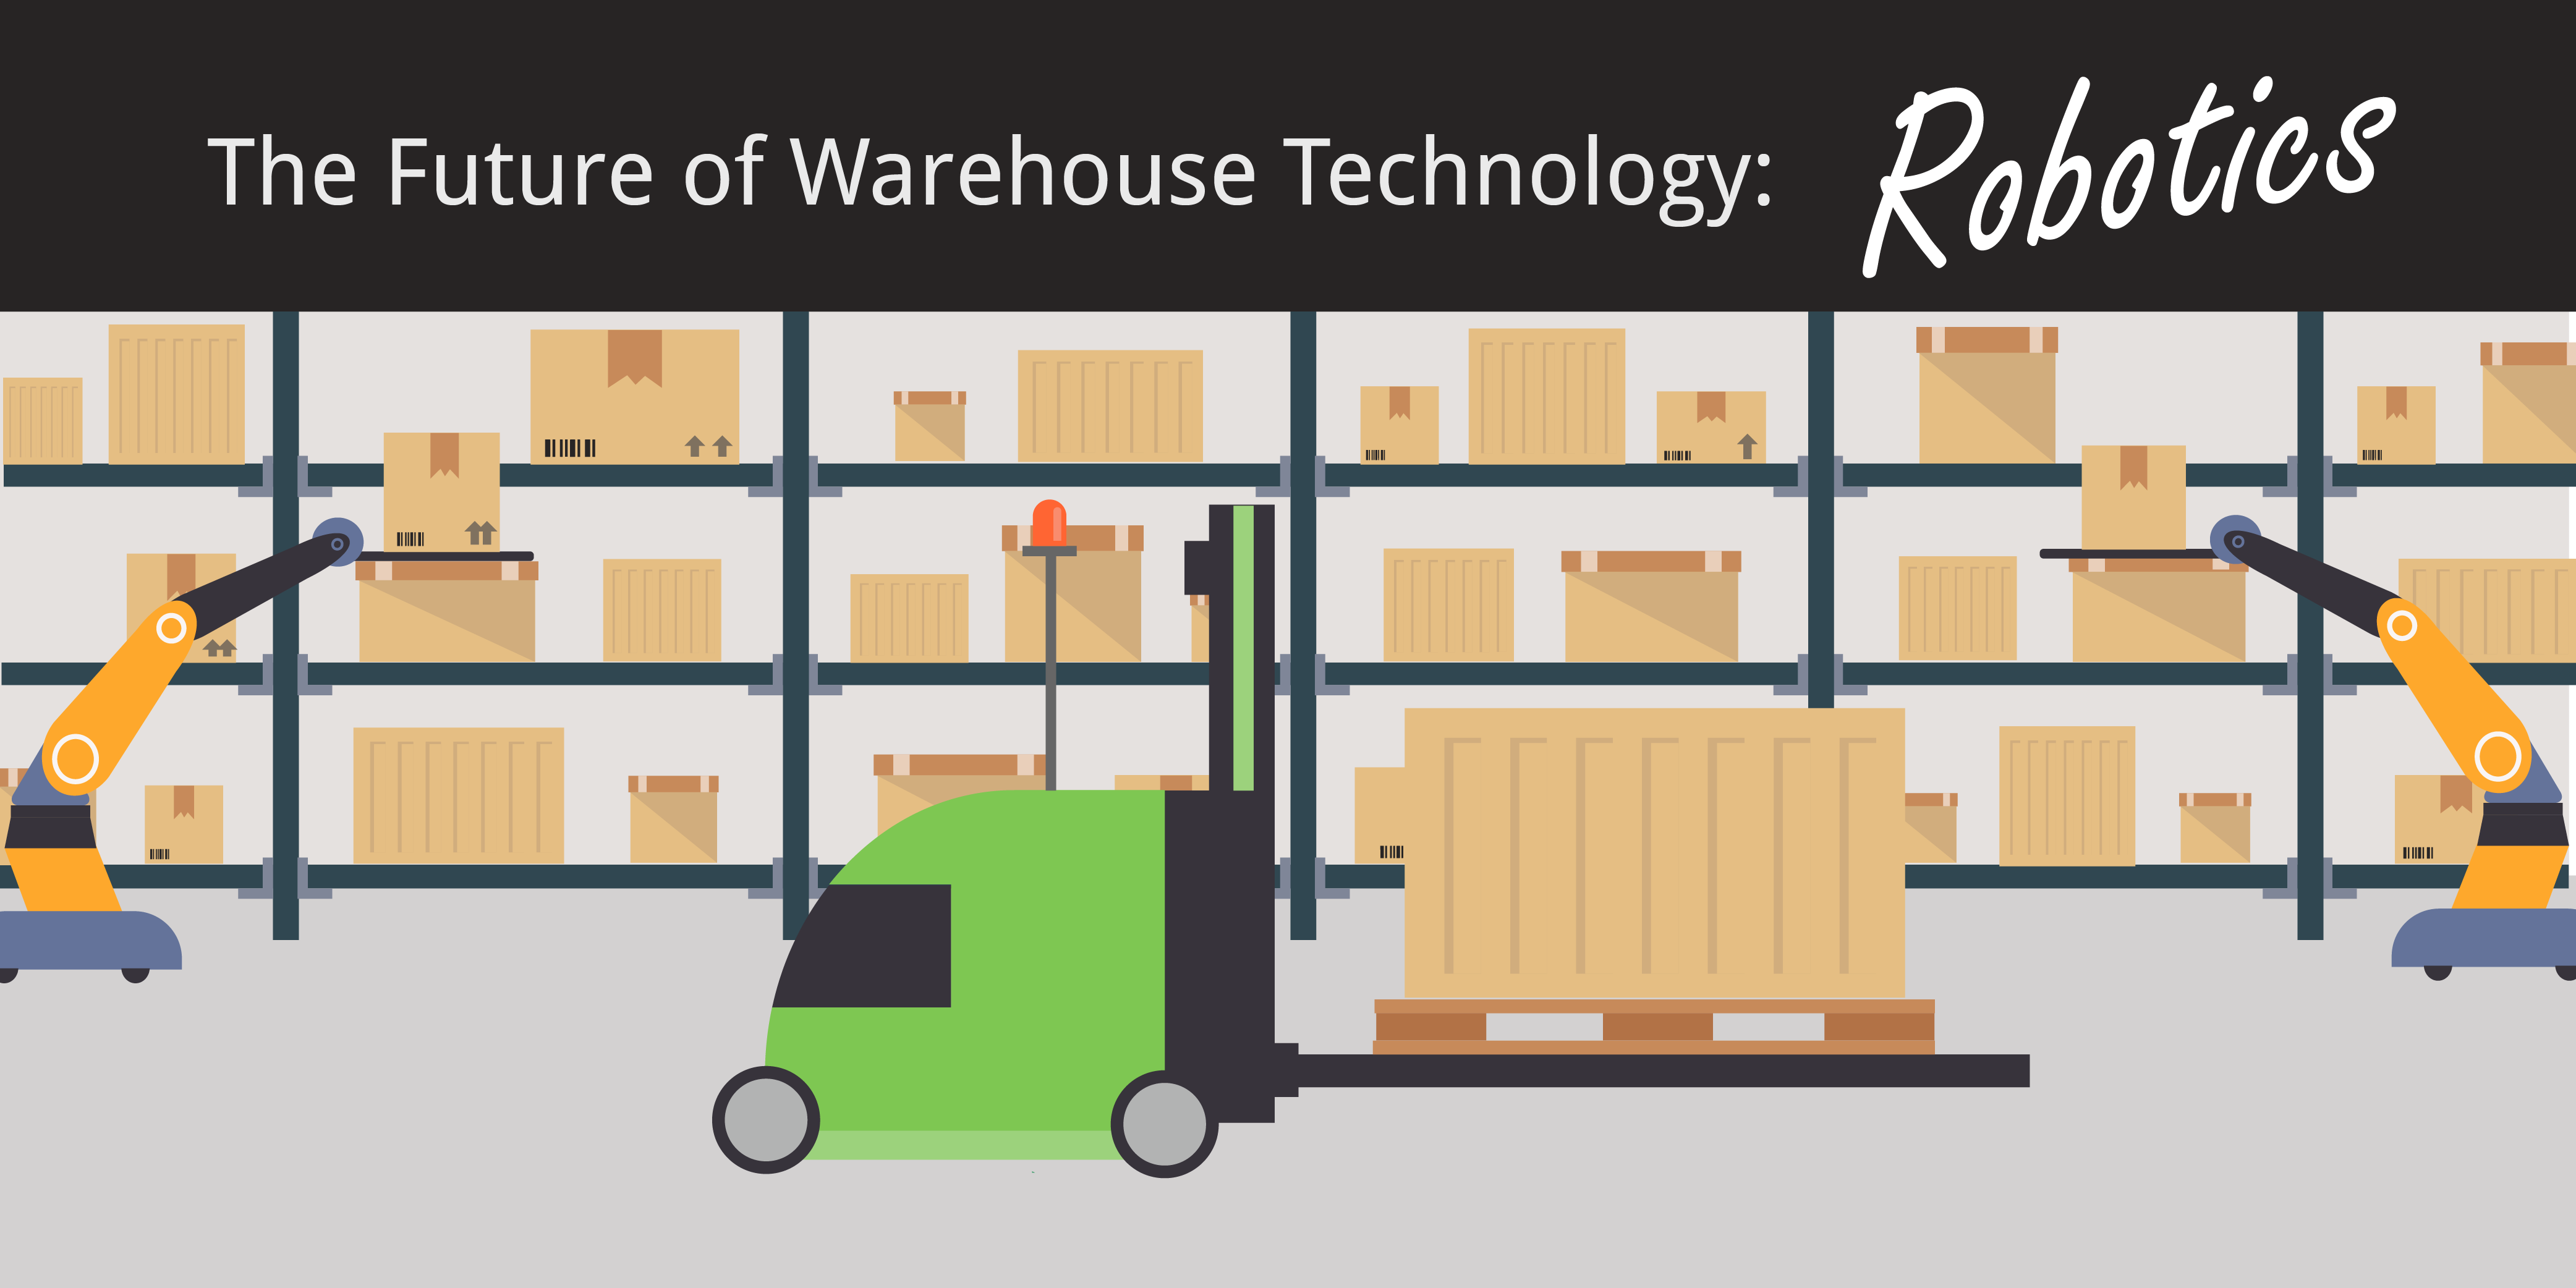 warehouse technology agv robotics inventory boxes on shelves flat icon graphic